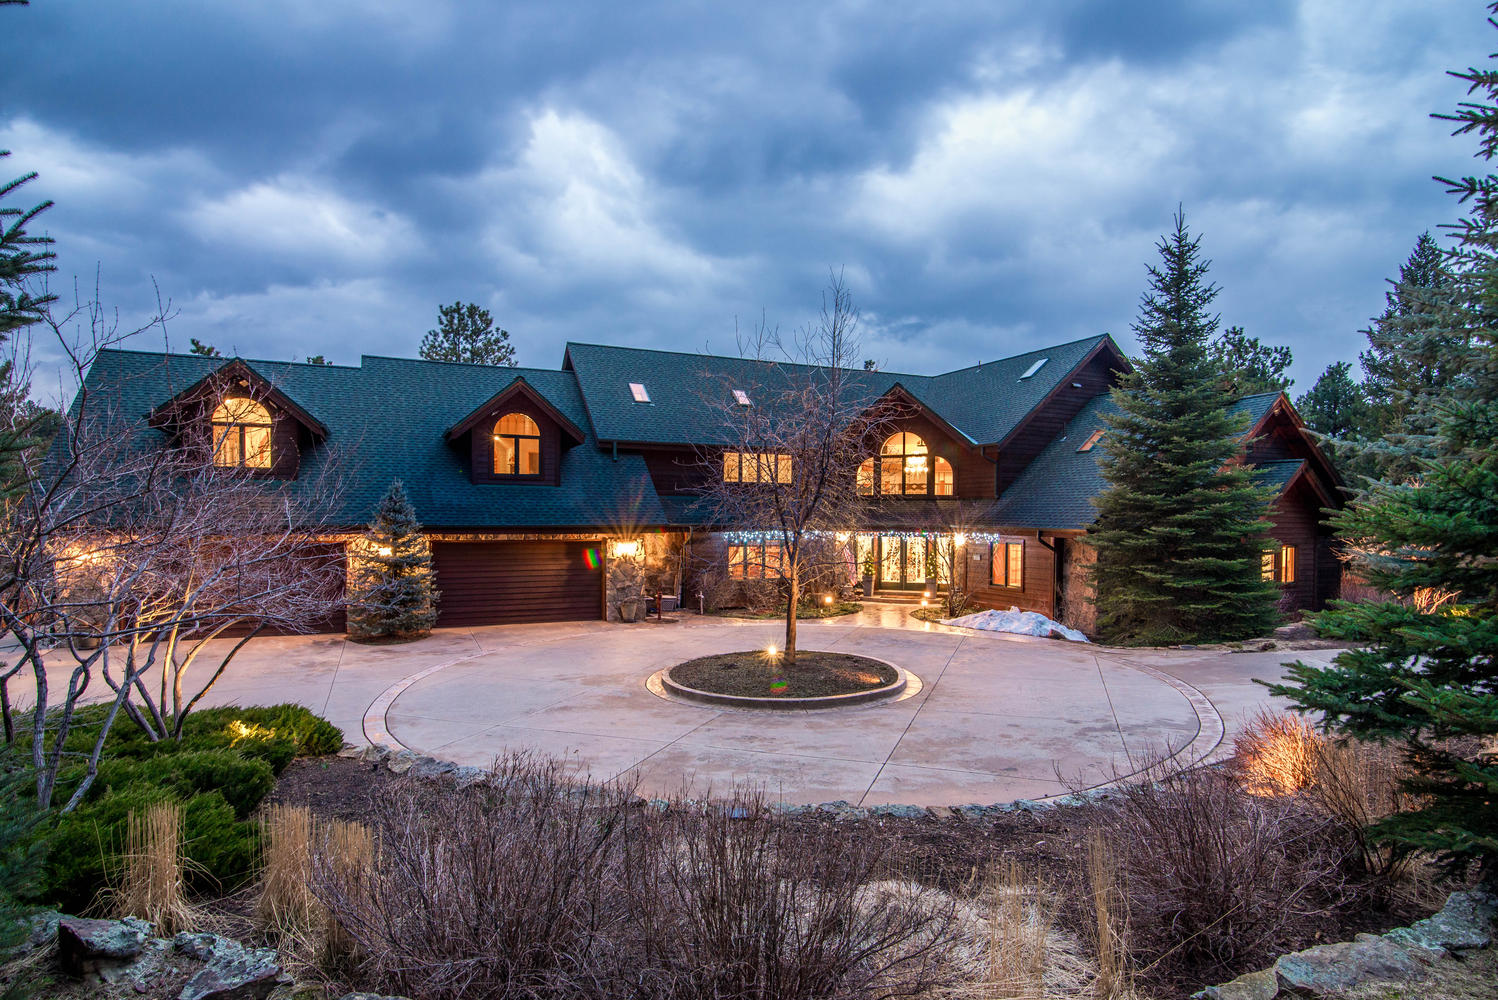 Maison unifamiliale pour l Vente à Majestic Estate Nestled on 42.42 Acres 28775 Cragmont Drive Evergreen, Colorado, 80439 États-Unis